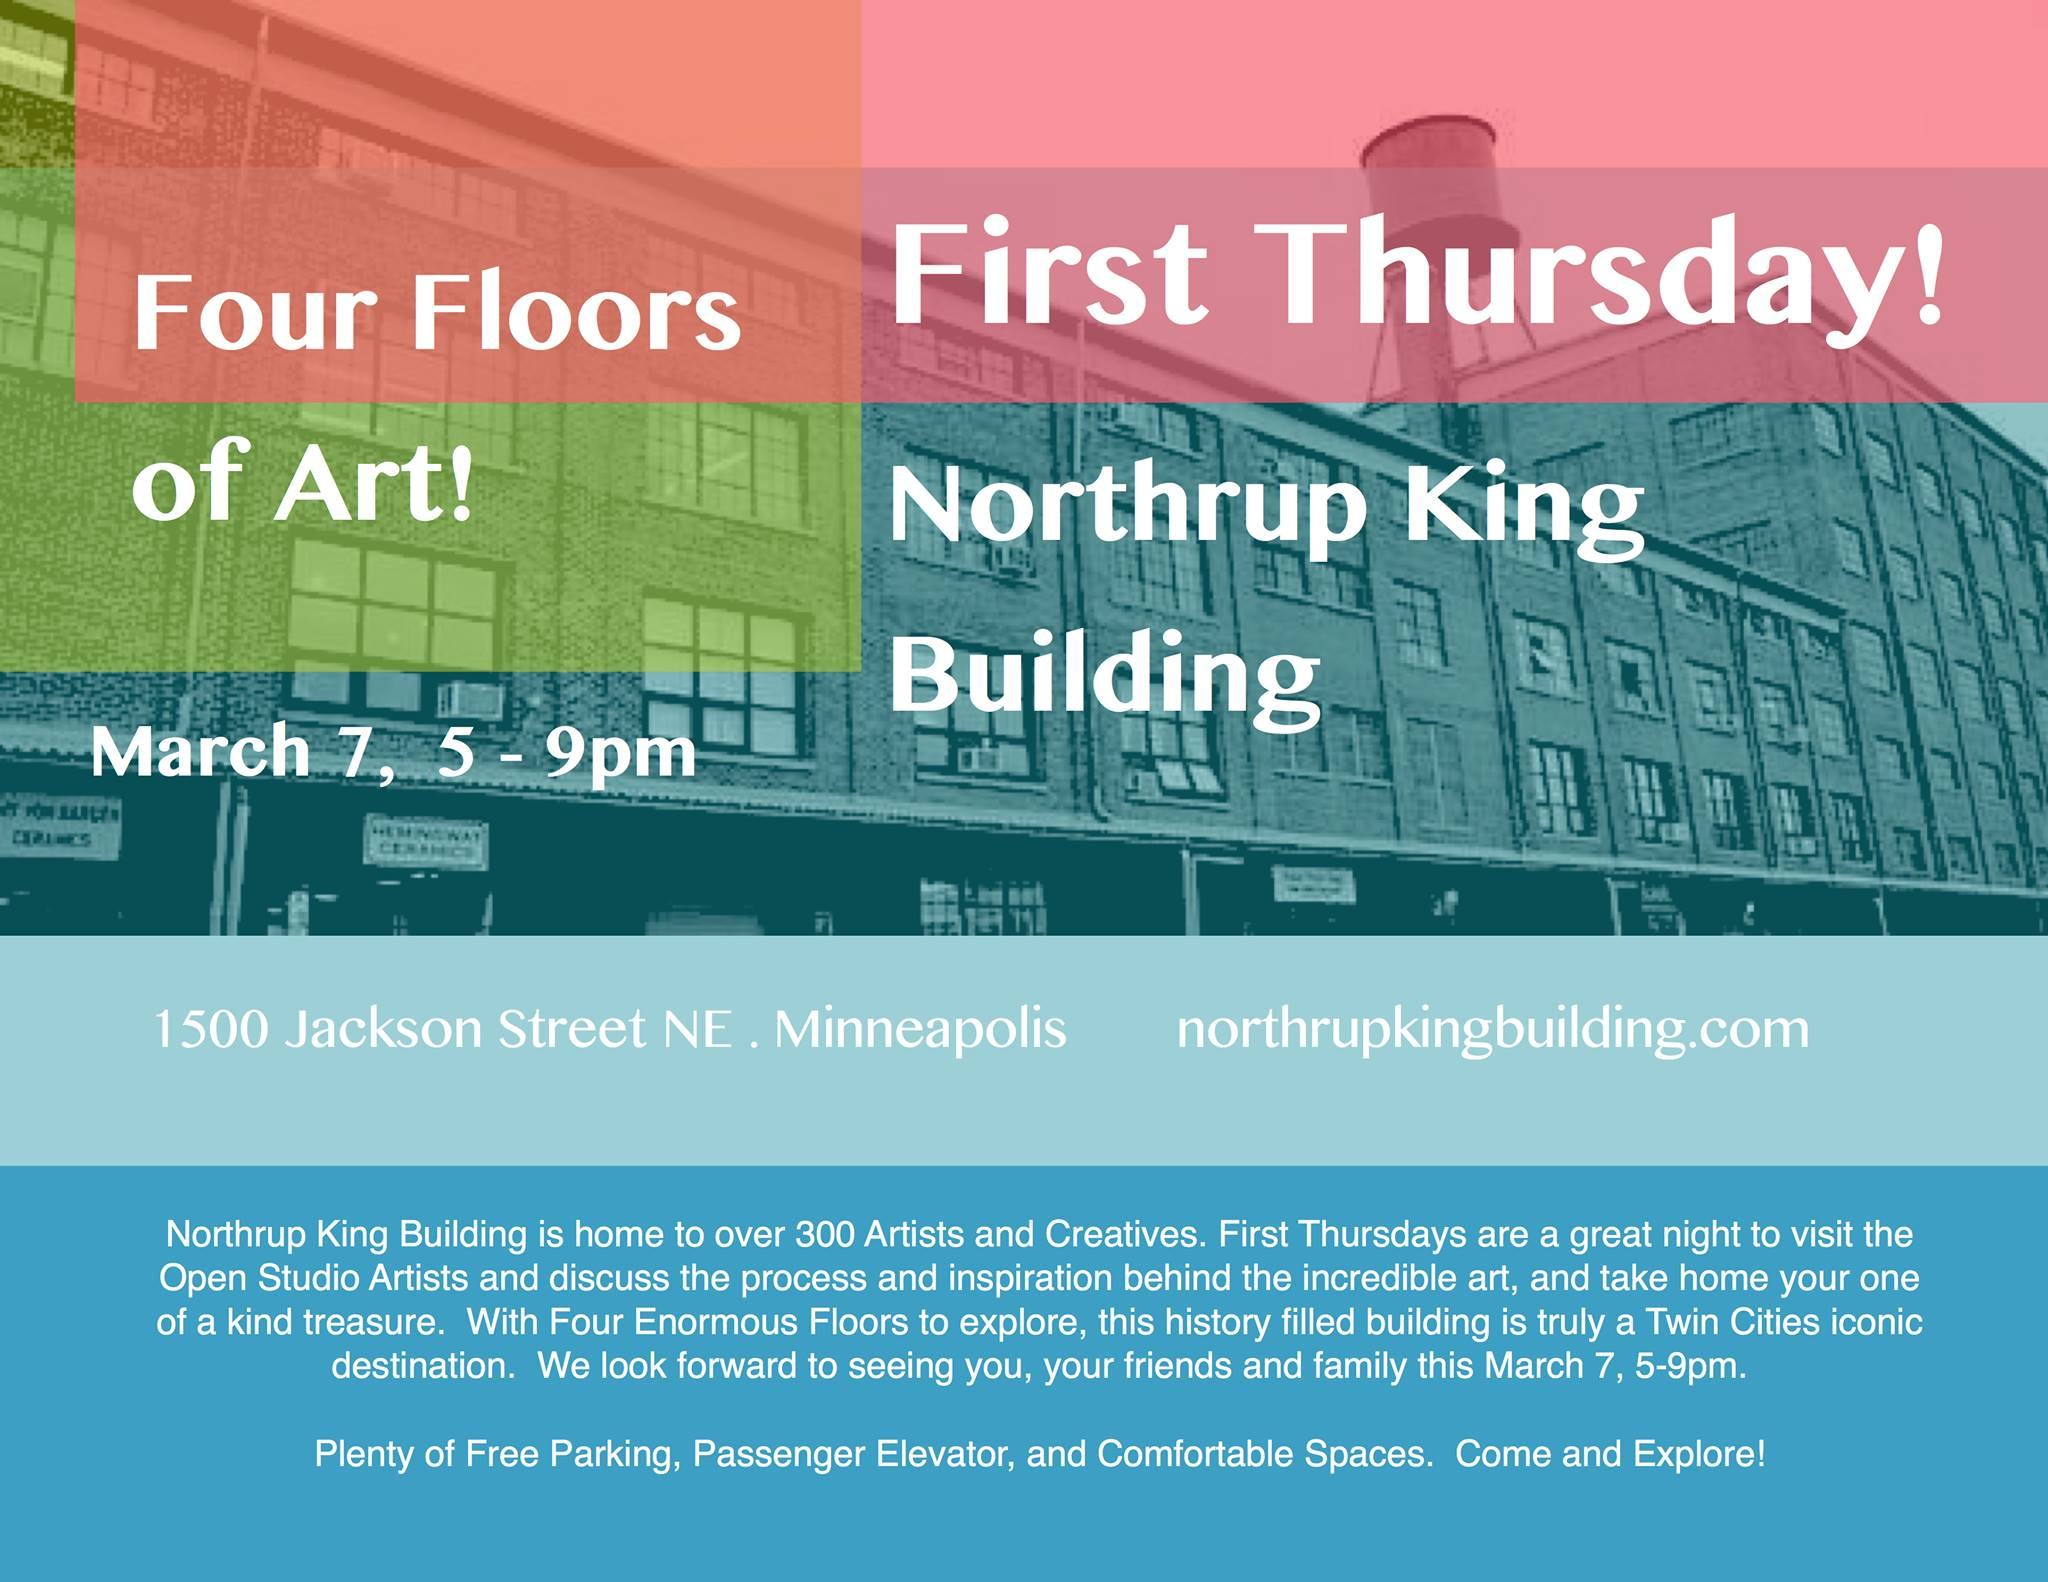 Northrup King Building First Thursday event:  Hundreds of artists under one roof.